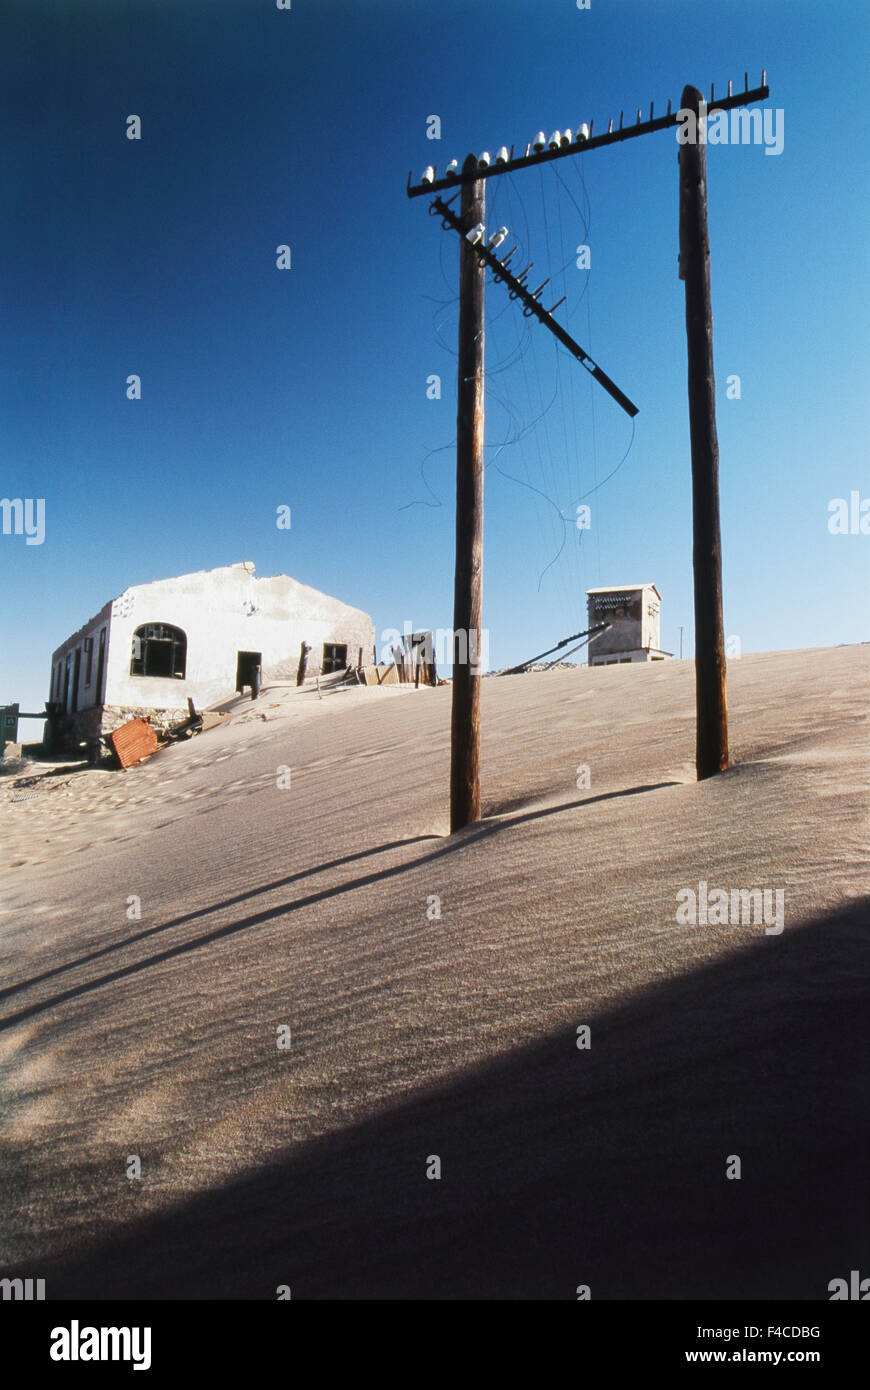 Namibia, Luderitz, Kolmanskop, South Coast, Kolmanskop ghost town, Mining town view Afternoon. (Large format sizes - Stock Image